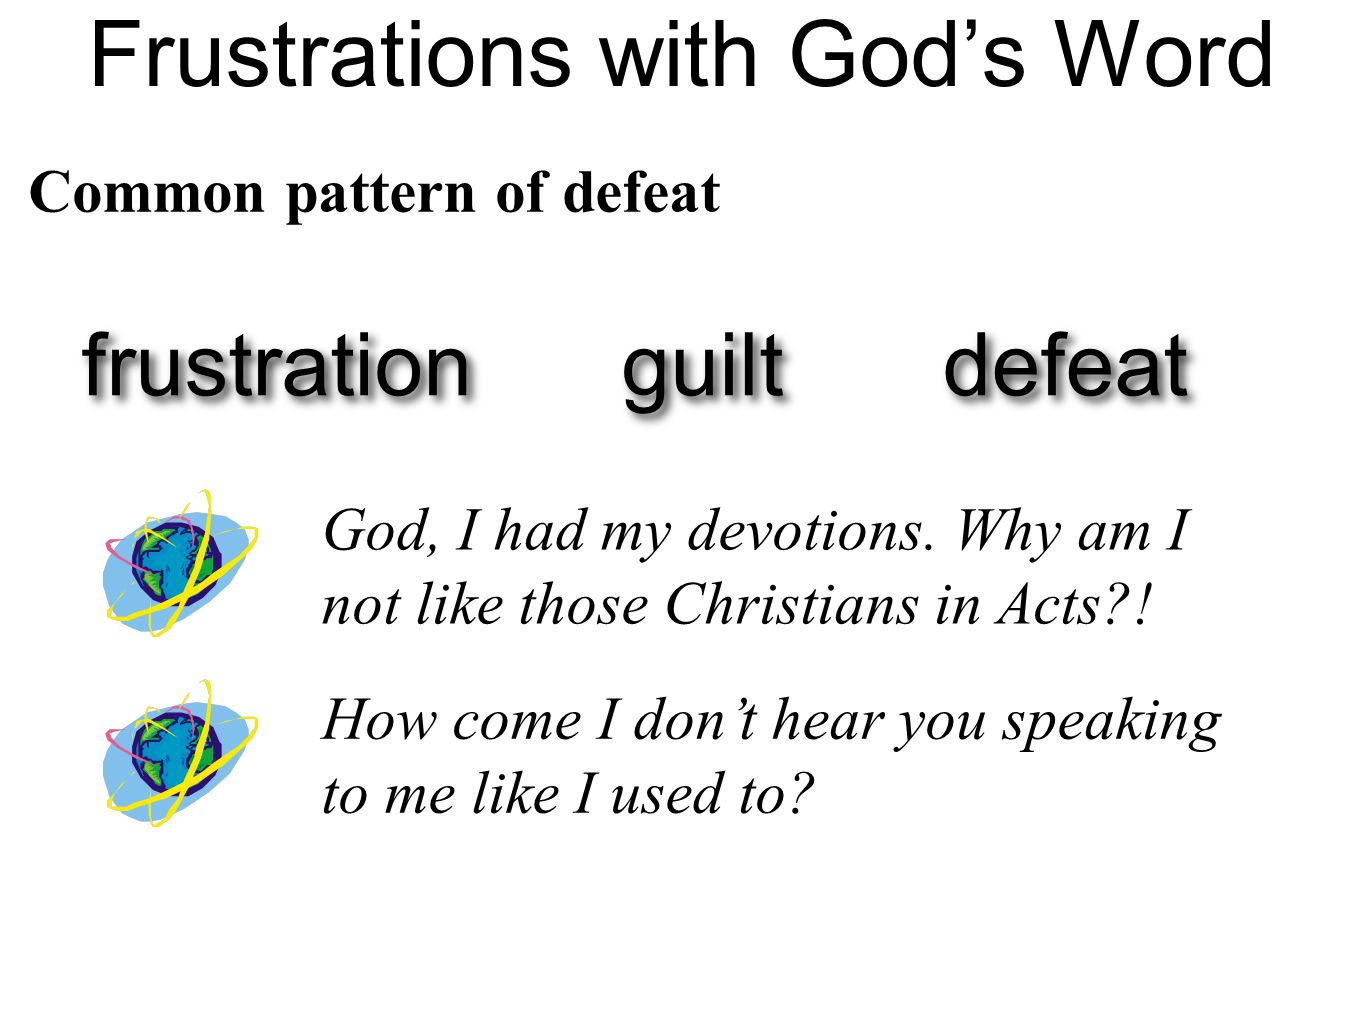 Frustrations with God's Word God, I had my devotions. Why am I not like those Christians in Acts?! guilt frustration defeat How come I don't hear you